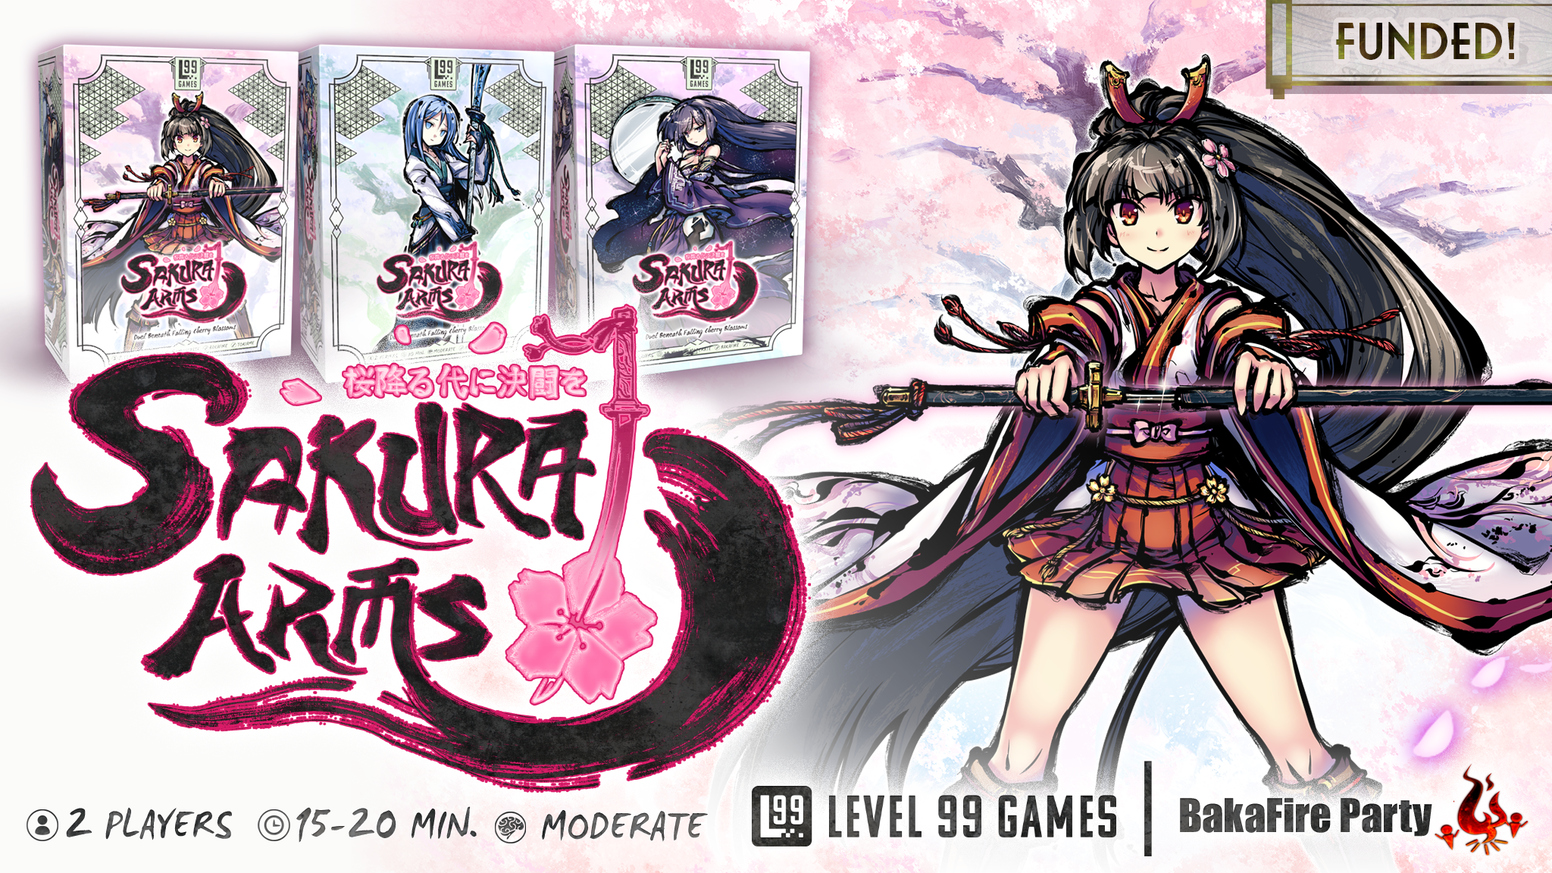 ❀ A unique card game from Japan. Invoke 18 martial goddesses to duel under falling cherry blossoms. ❀